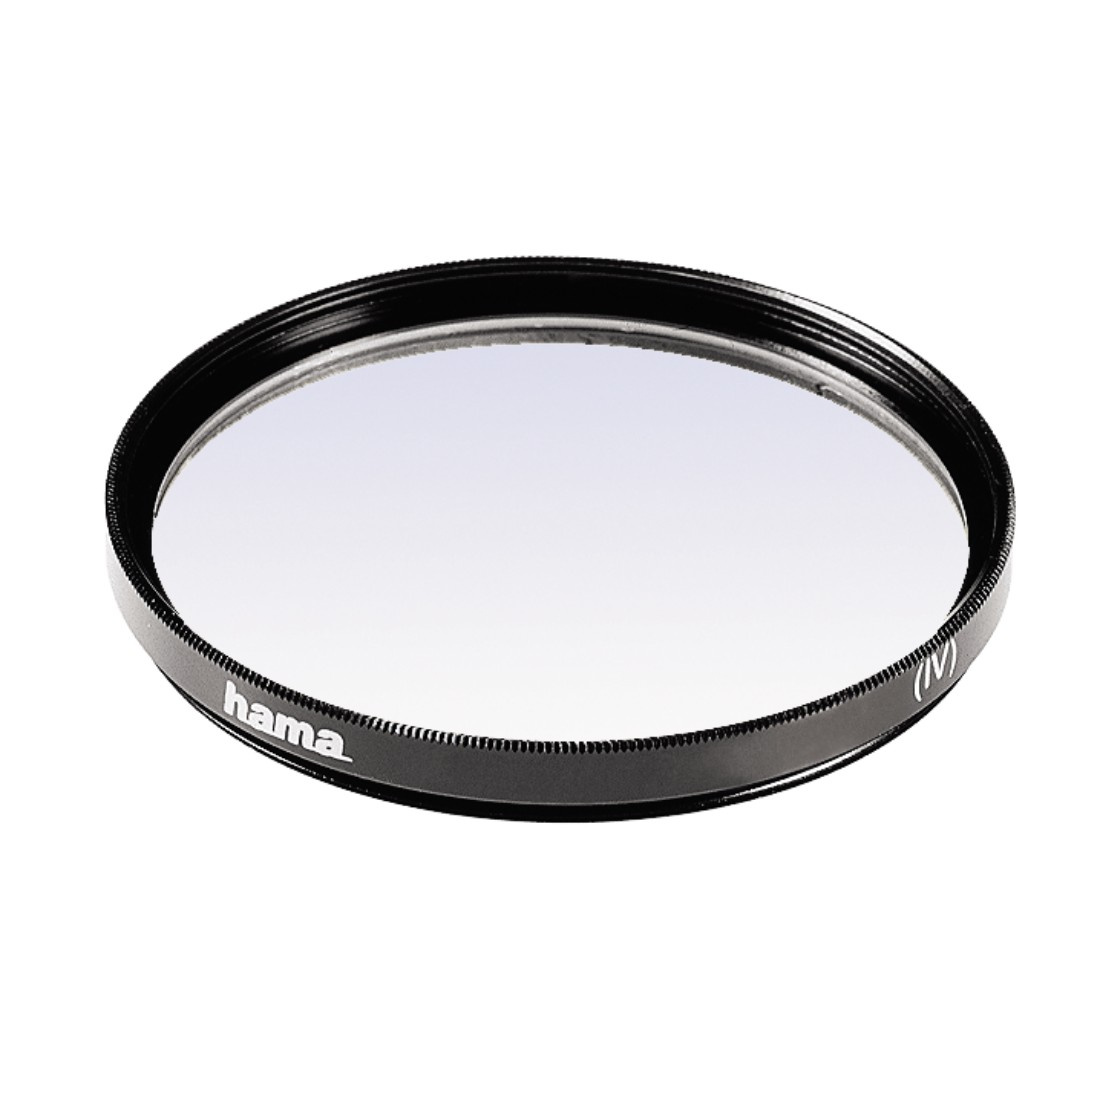 abx High-Res Image - Hama, UV Filter, coated, 58.0 mm